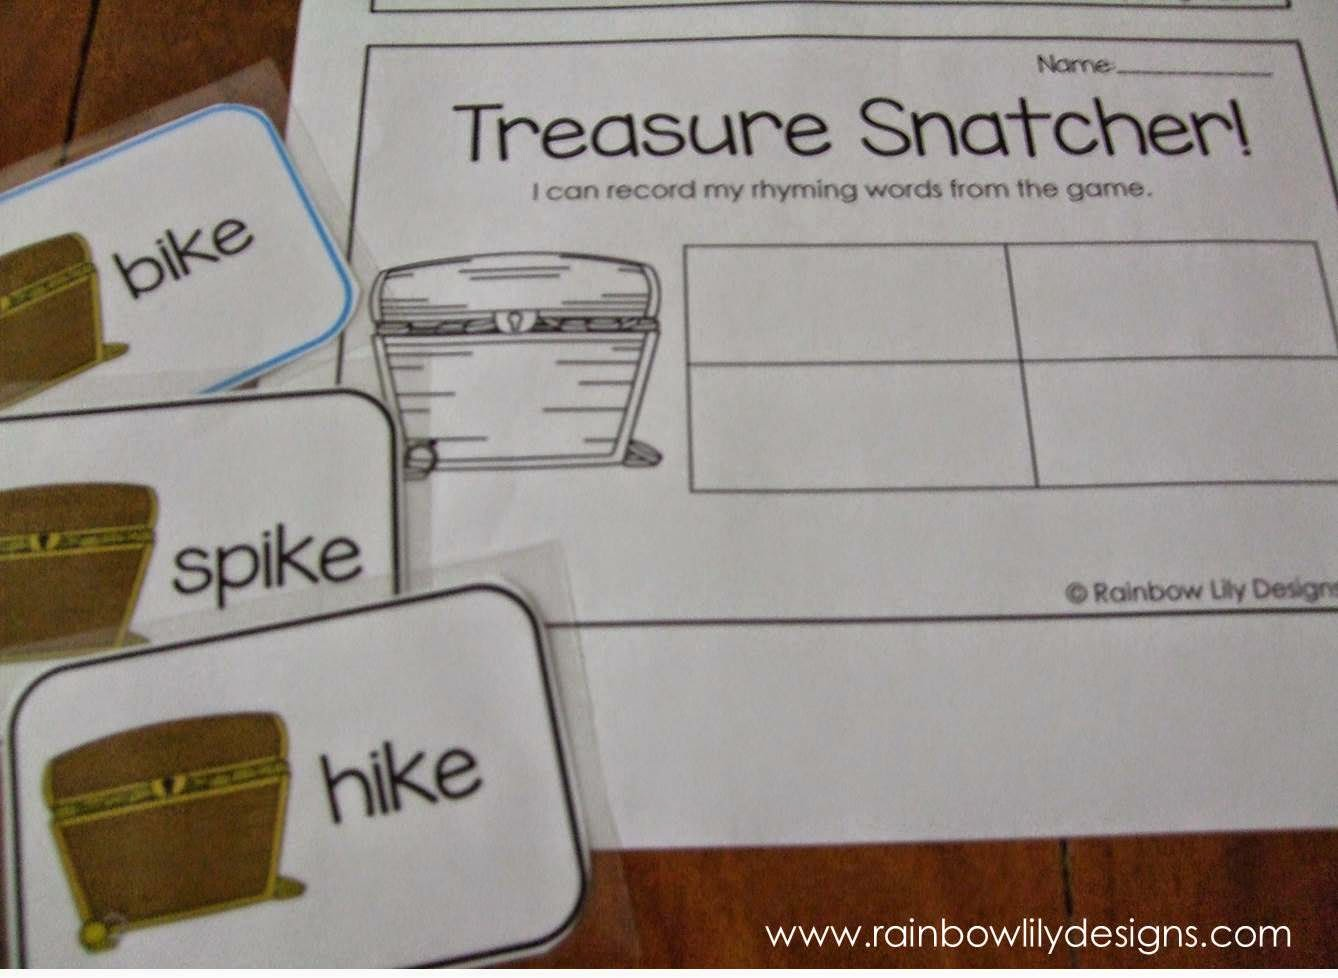 Pirate themed rhyming game and worksheets #education #pirates #RainbowLilyDesigns